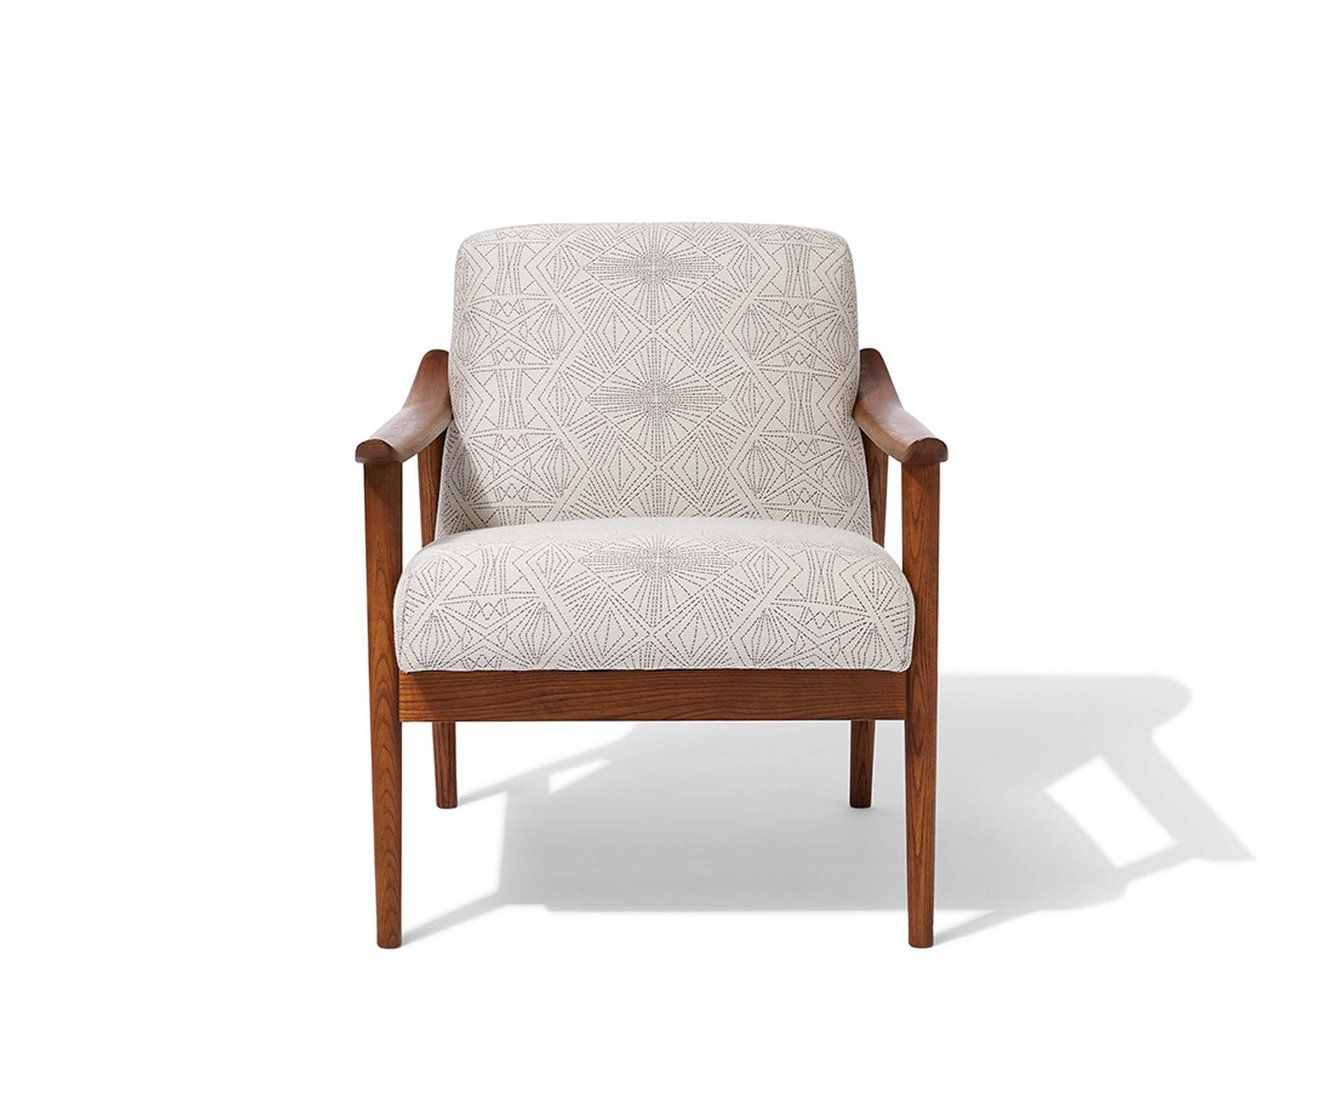 Show Wood Chair Chair Lounge Seating Seating